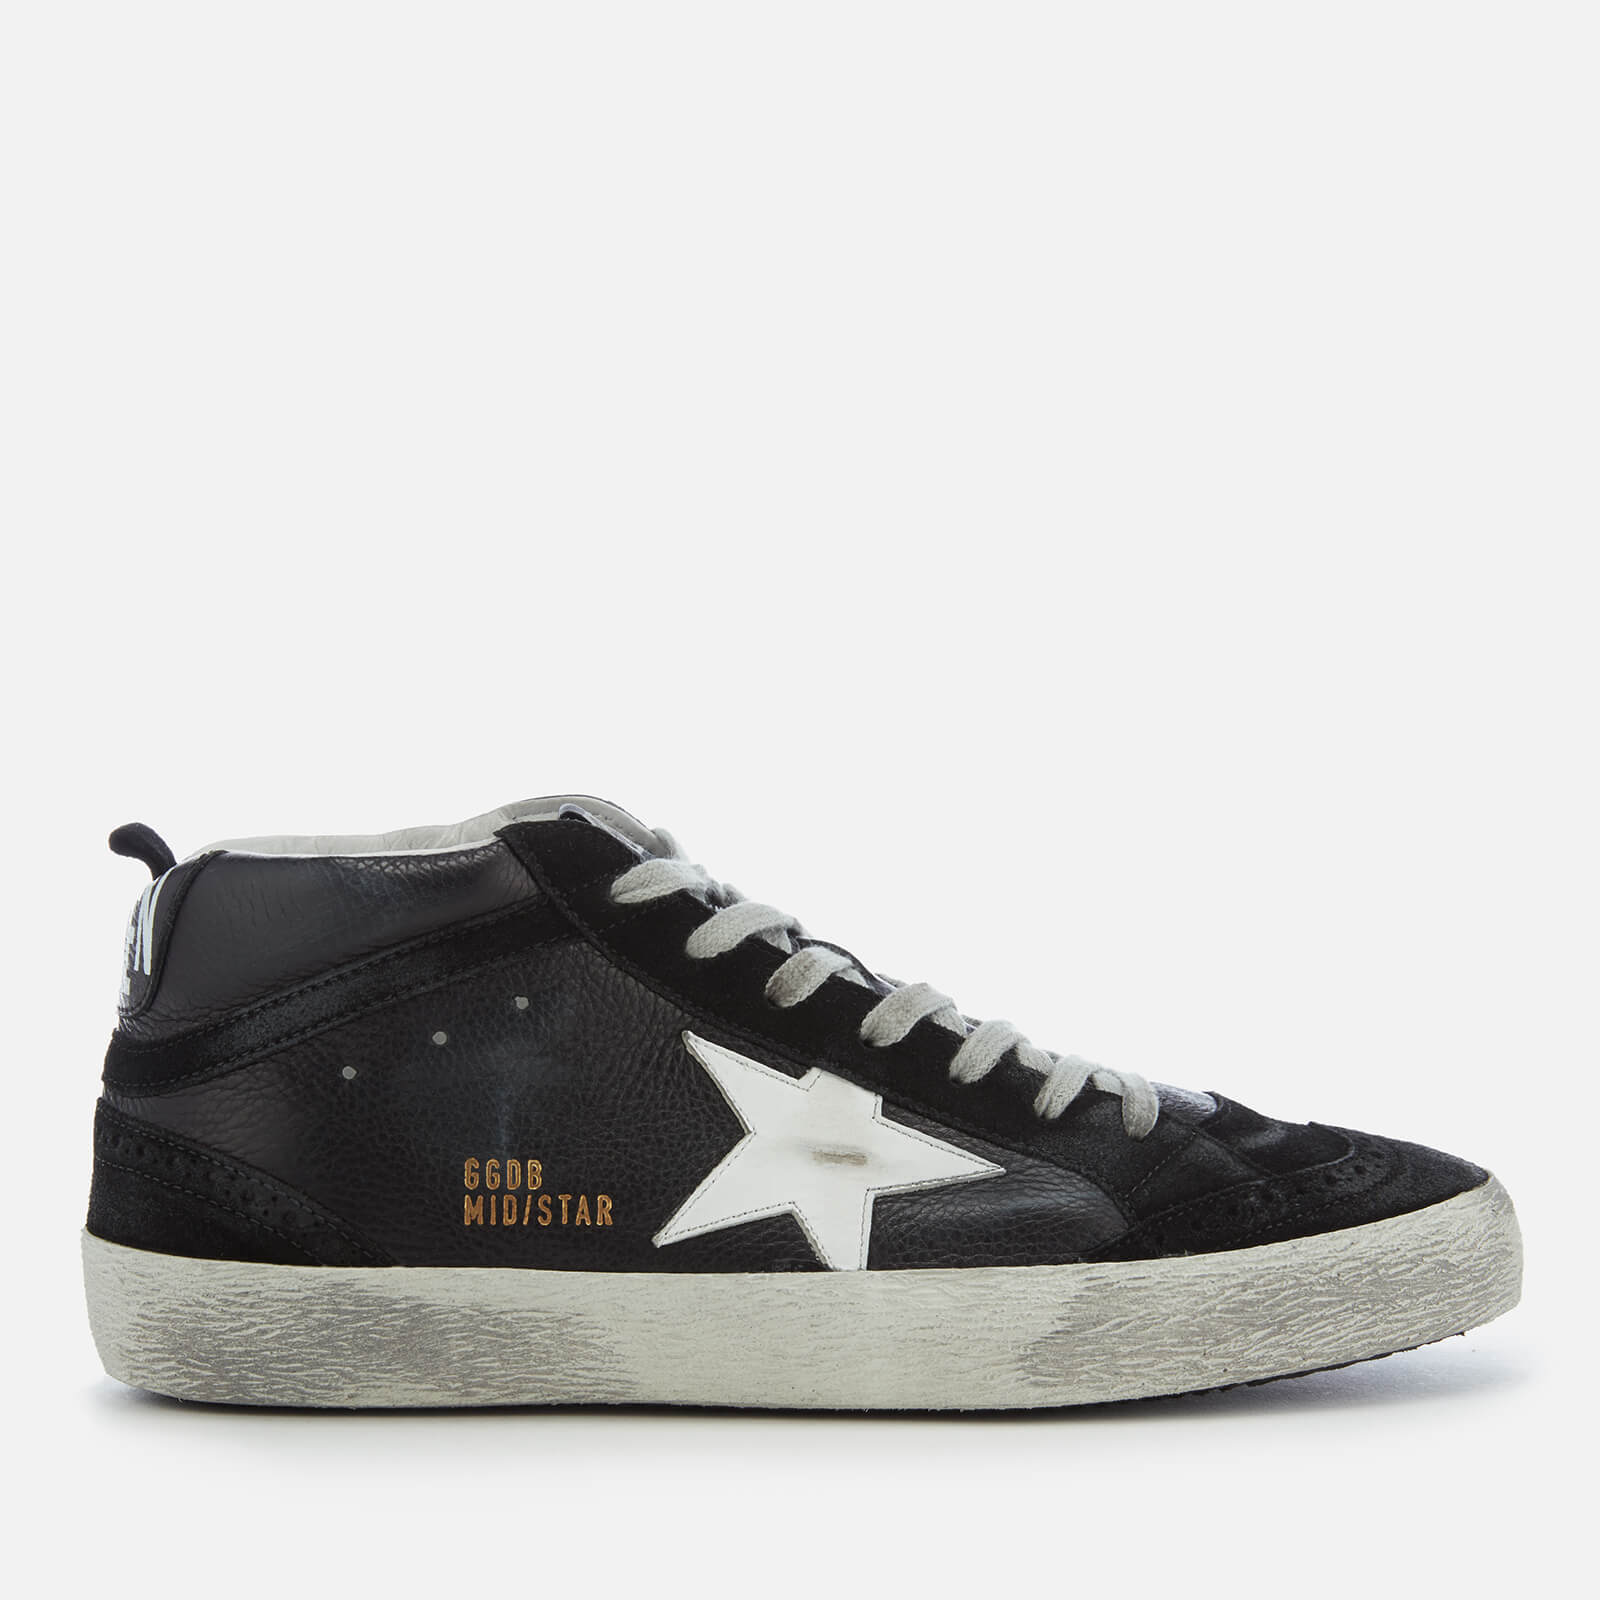 bcc42735c Golden Goose Deluxe Brand Men's Mid Star Sneakers - Black Leather/White Star  - Free UK Delivery over £50